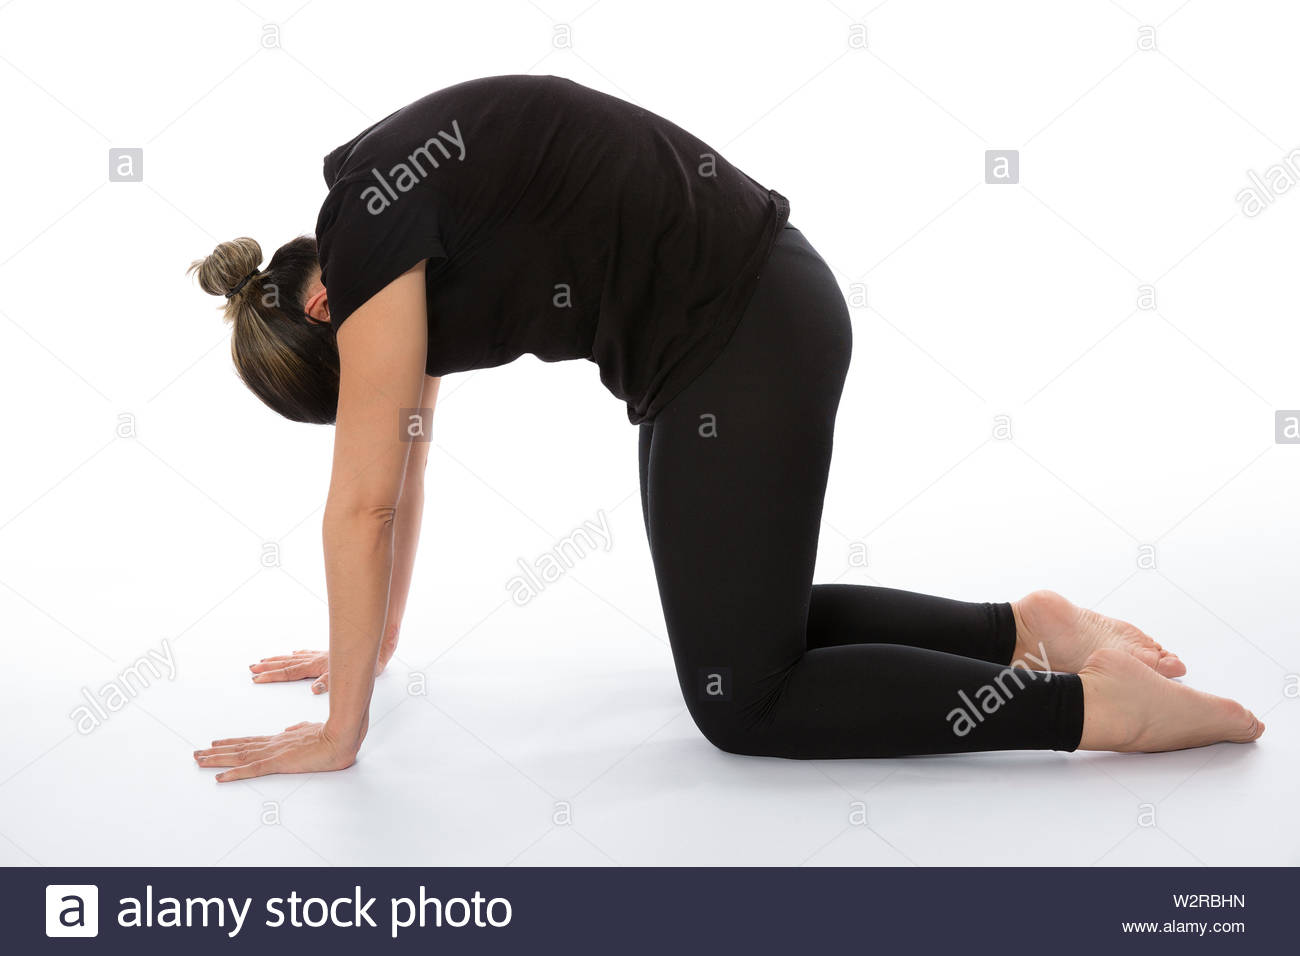 Marjaryasana pose (cat yoga pose) . Yoga poses woman isolated with white background. Yoga pose set. Mindfulness and Spiritually concept. Girl practici Stock Photo